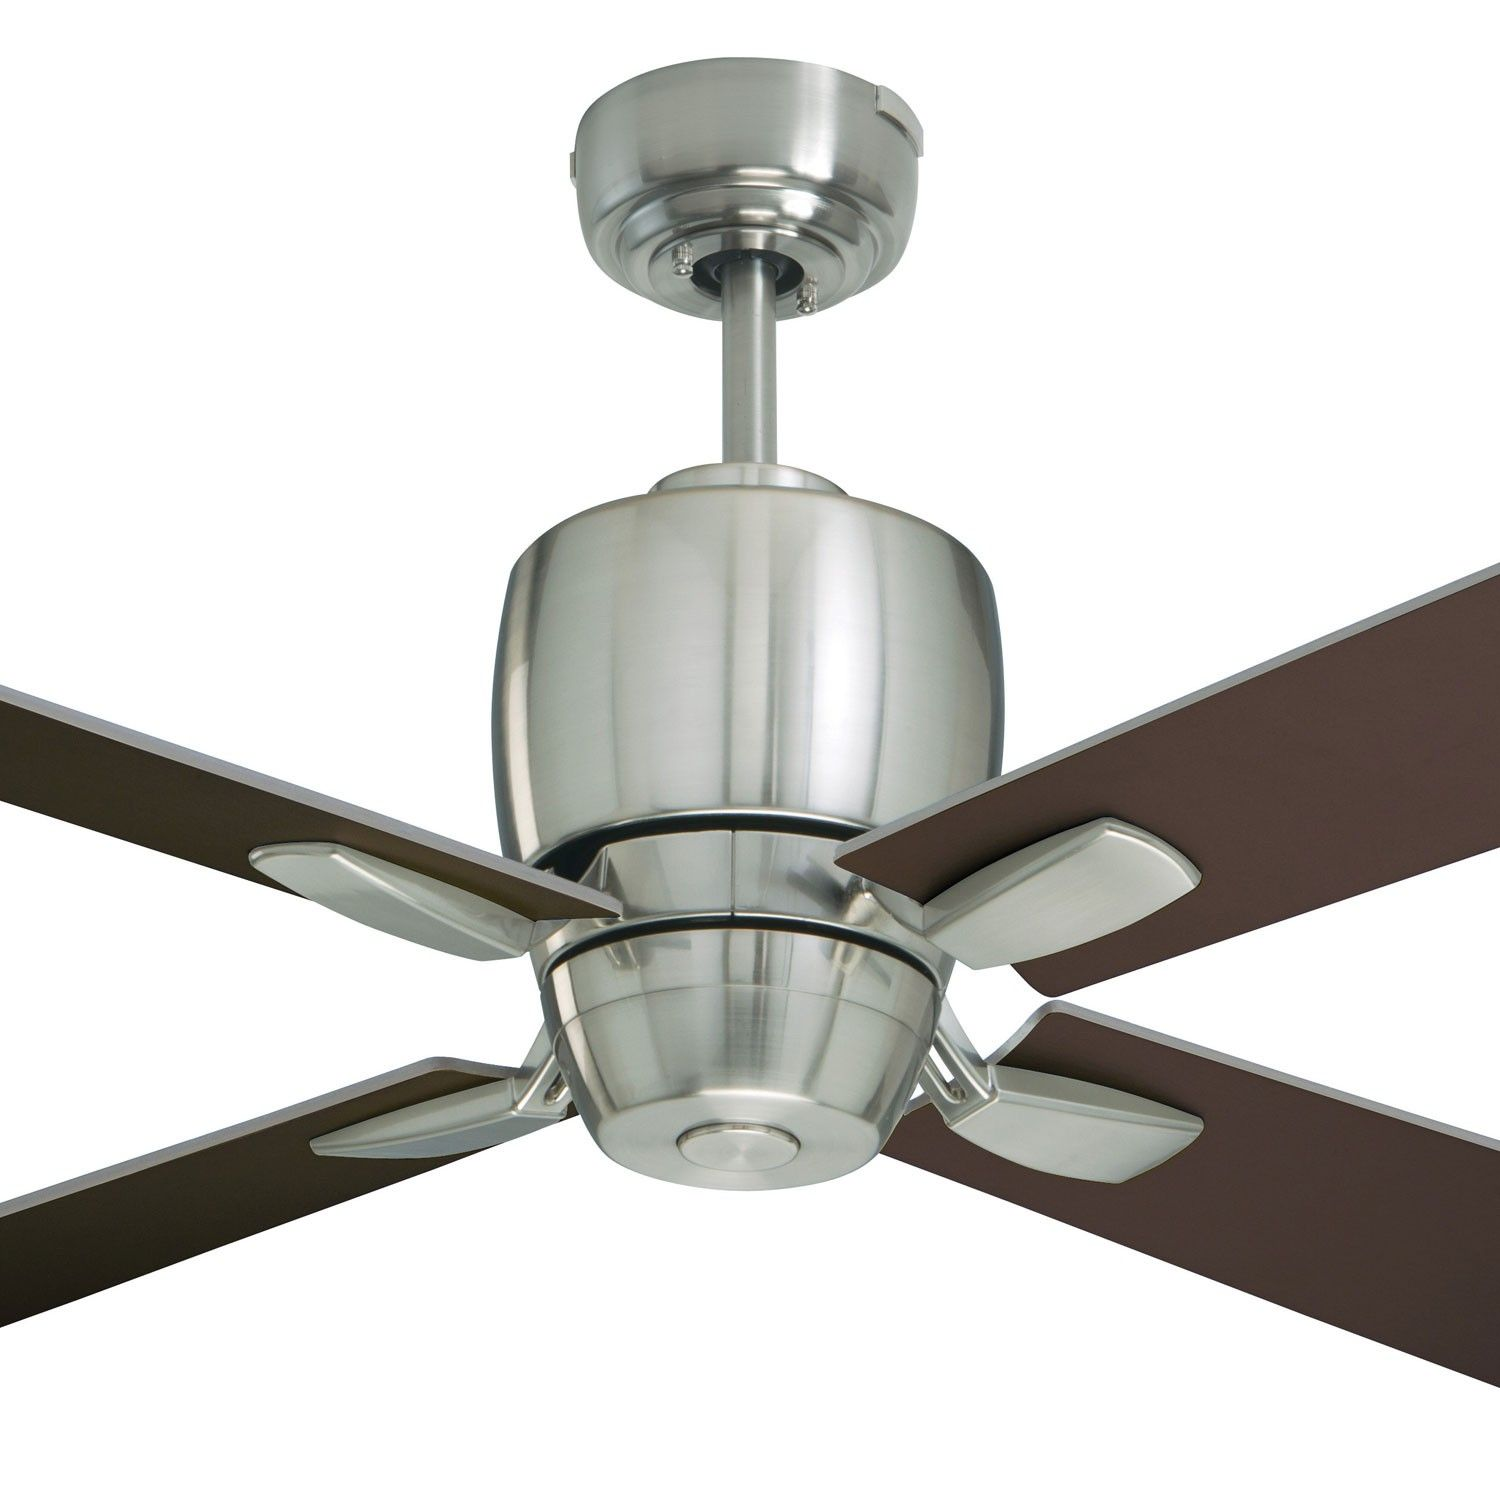 Veloce cover plate emerson fans and ceiling fan veloce cover plate ceiling fan remoteceiling fansemerson electricceiling aloadofball Image collections